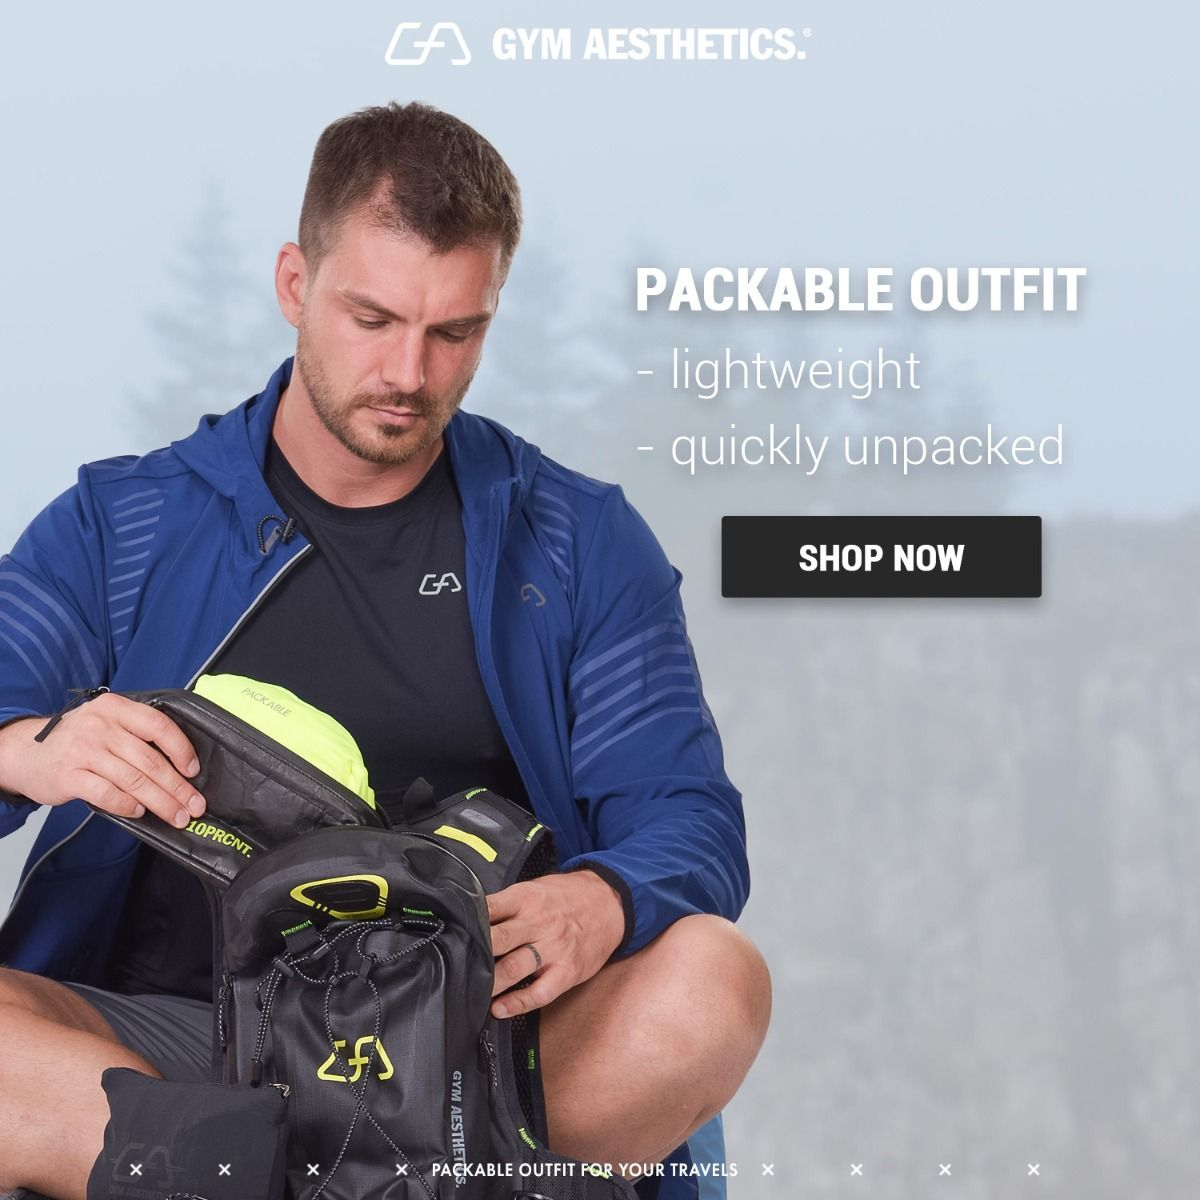 gym-outfits/packable?slider